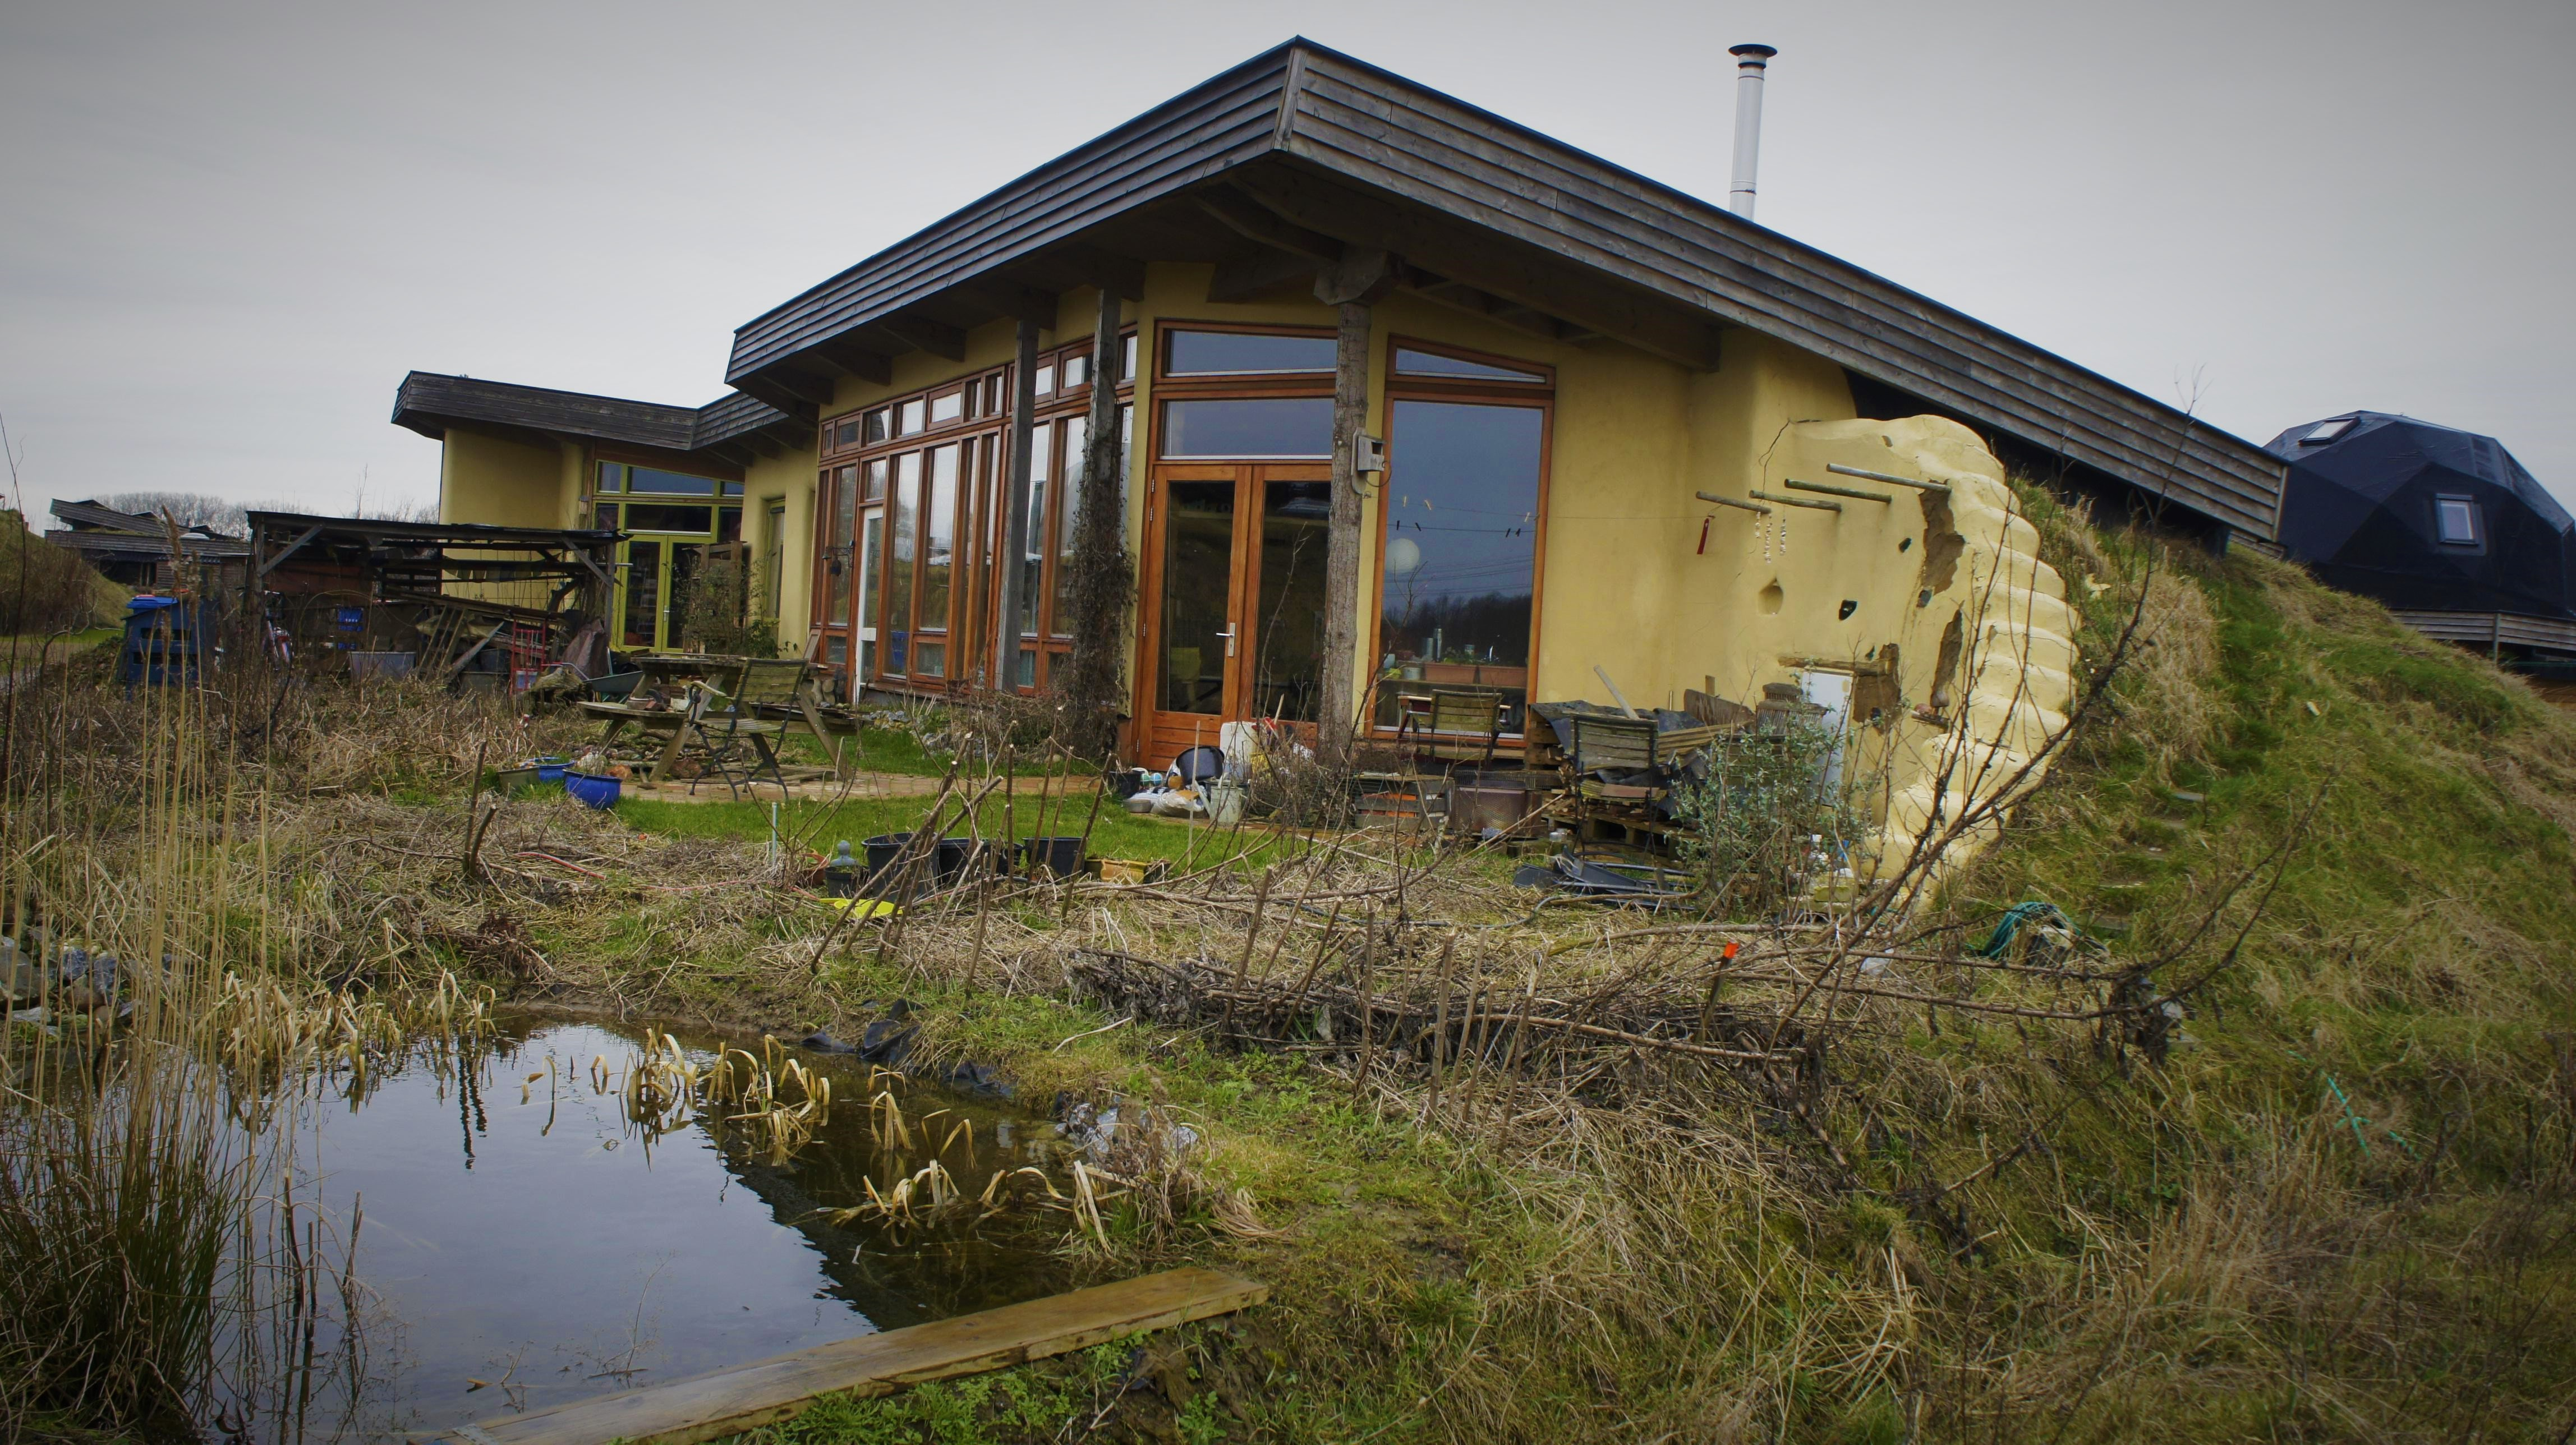 Aardhuis – Earthship concept, build your own house easily! #1